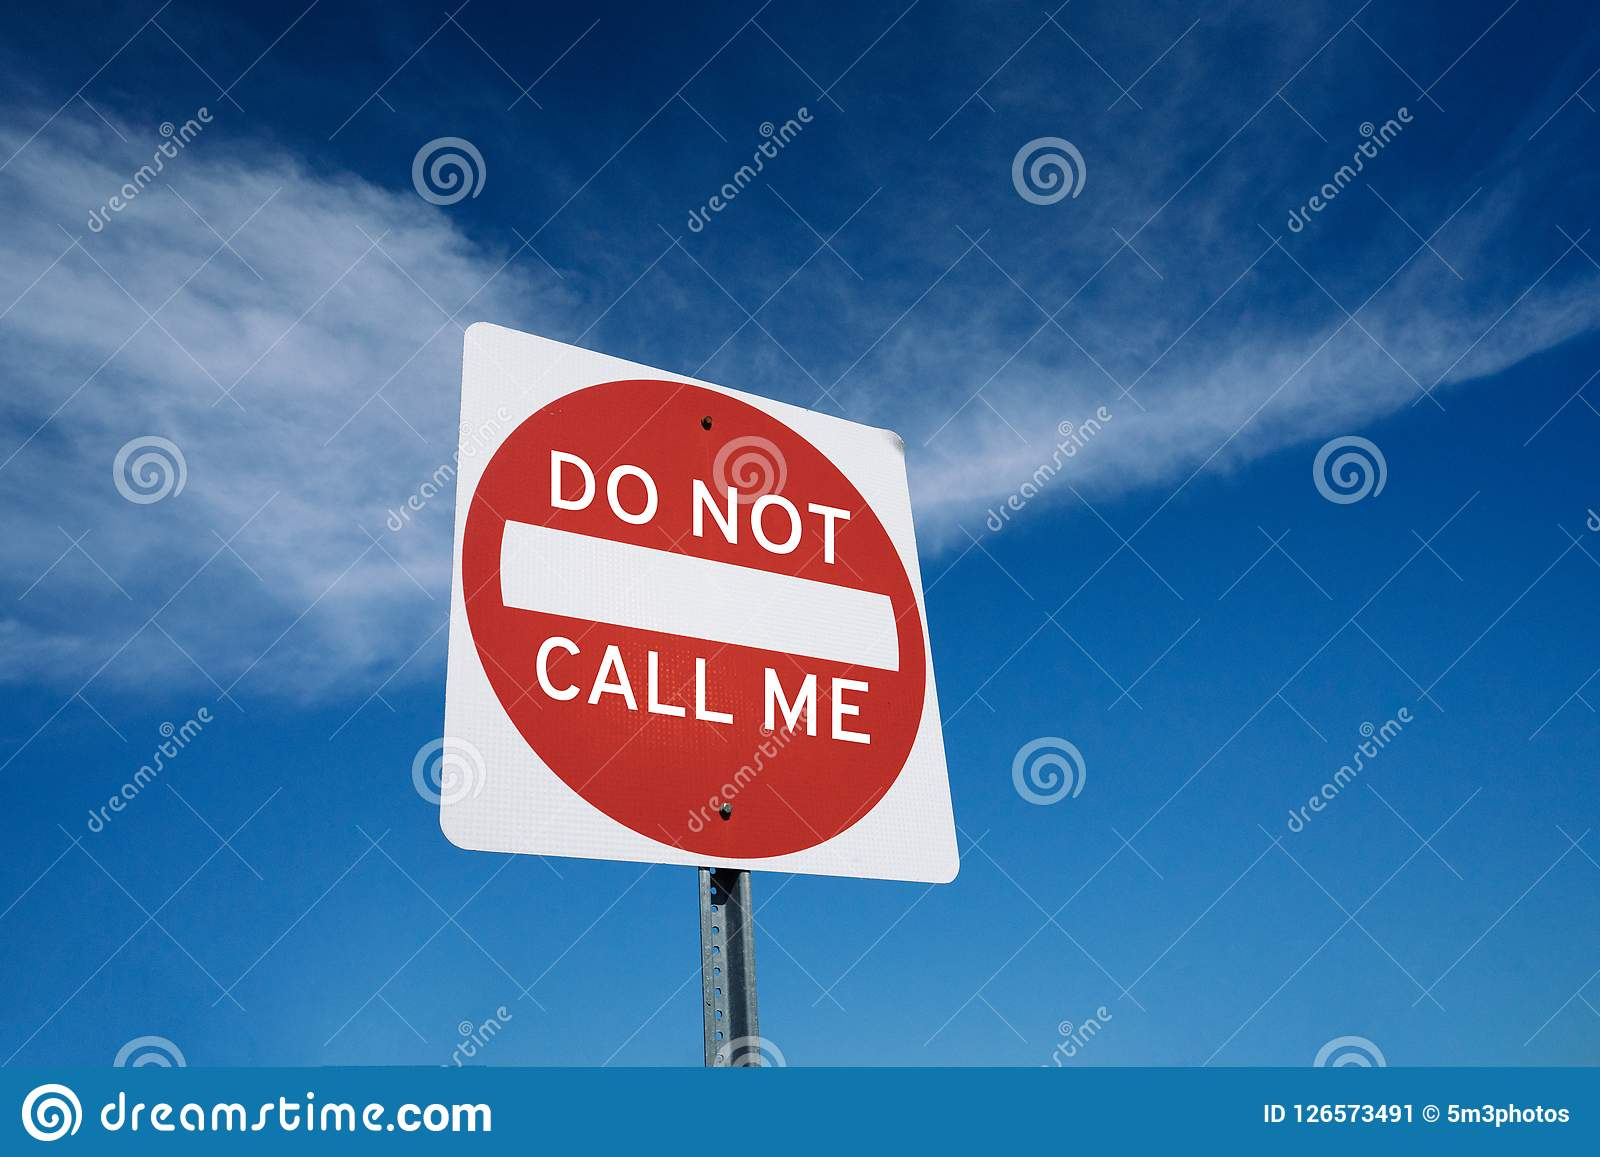 do not call list sign metaphor concept stock image - image of safety